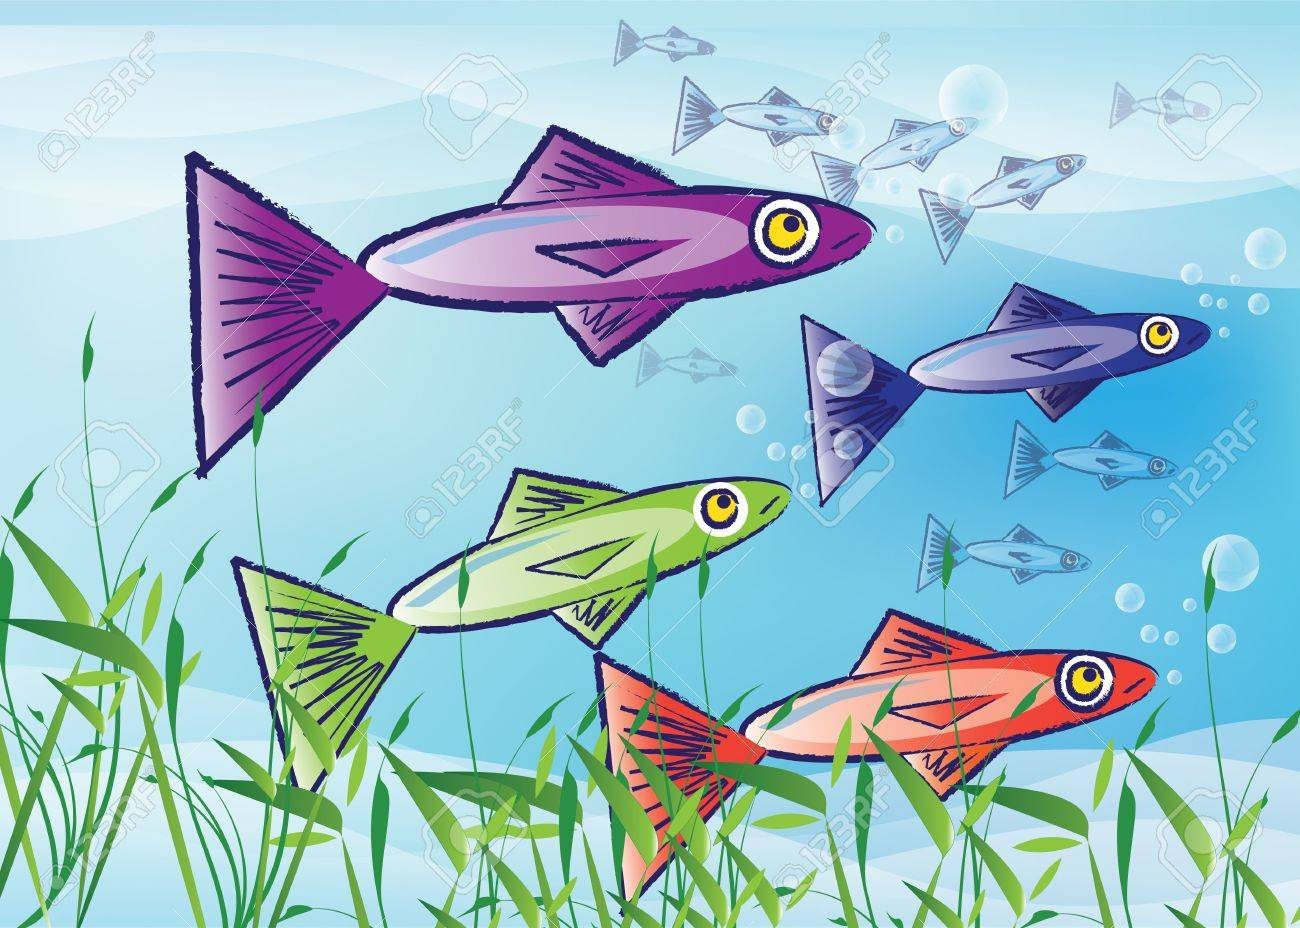 An illustration of stylized fish. Three colourful fish to the foreground with a shoal, or school, of smaller fish to the background over a blue background with grass reeds to the front. Stock Illustration - 7878987